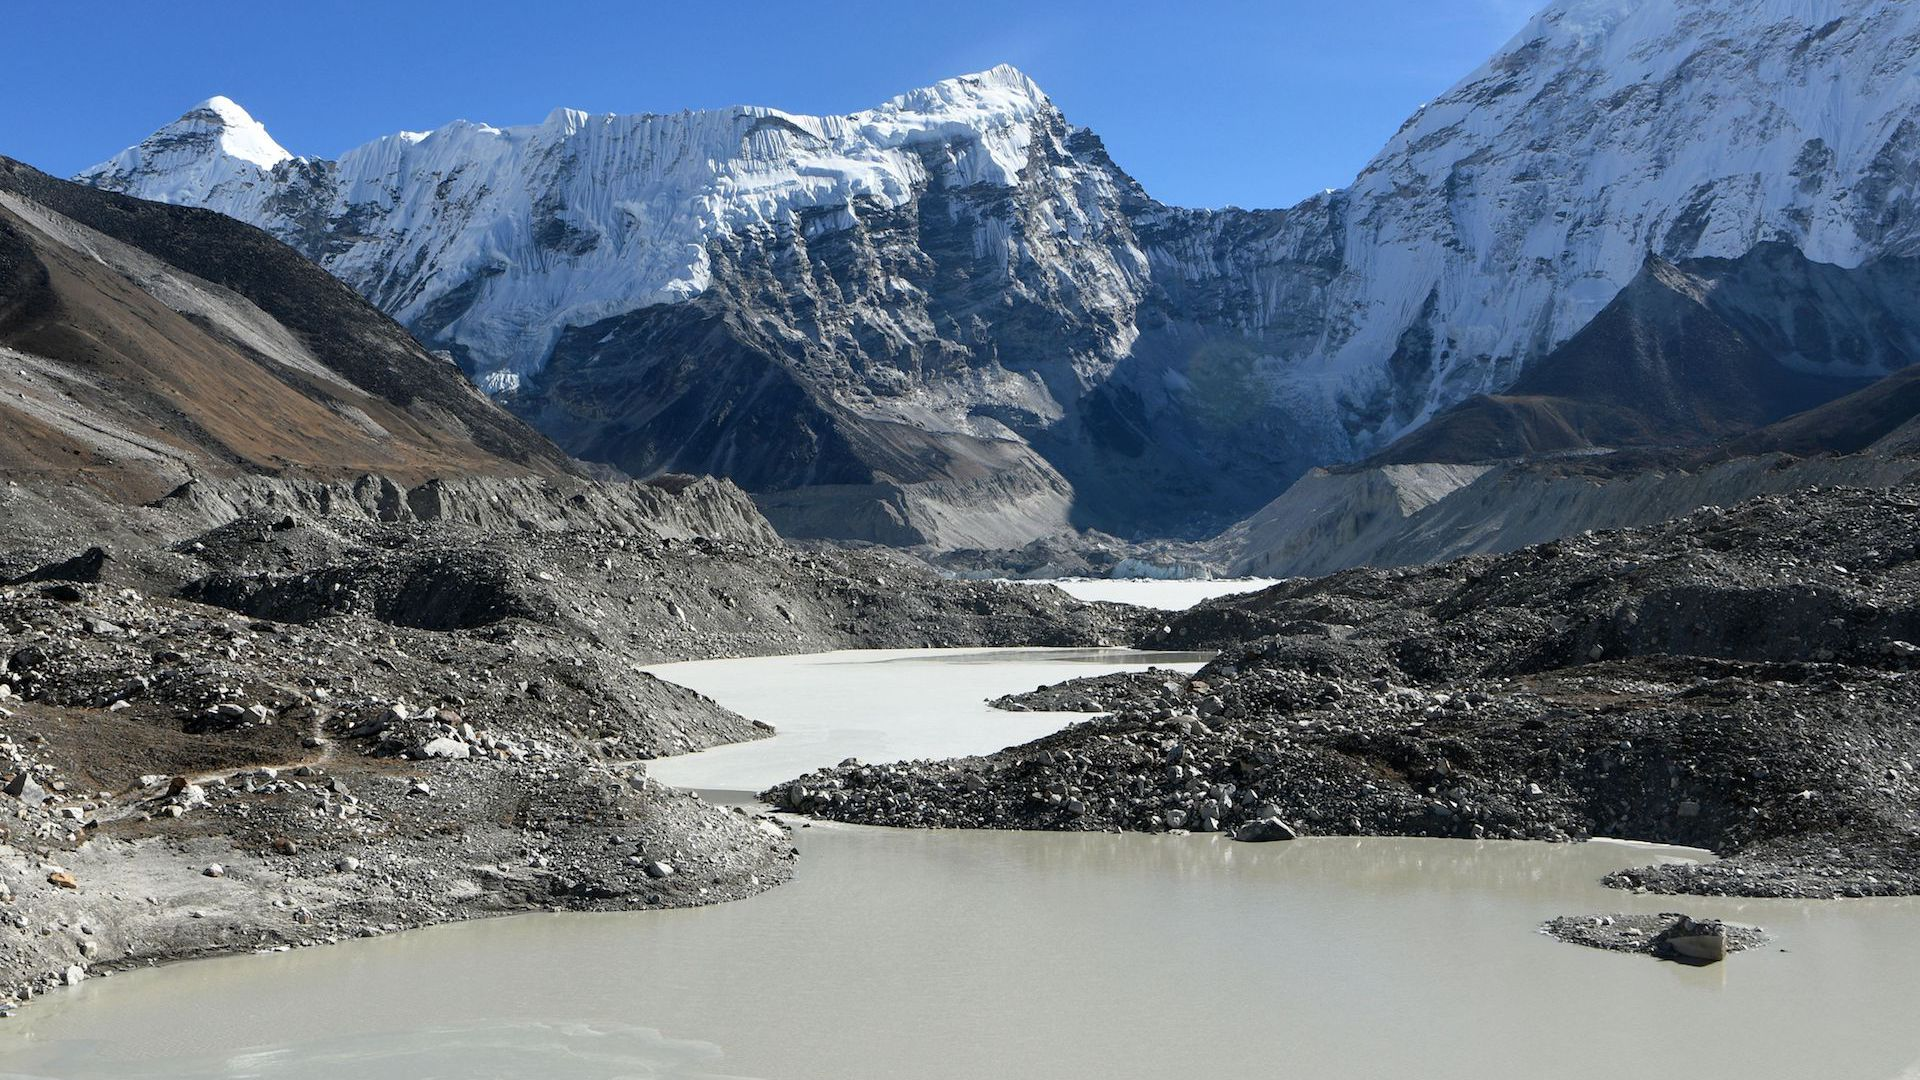 The Imja glacial lake controlled exit channel in the Everest region of the Solukhumbu district, northeast of Kathmandu.